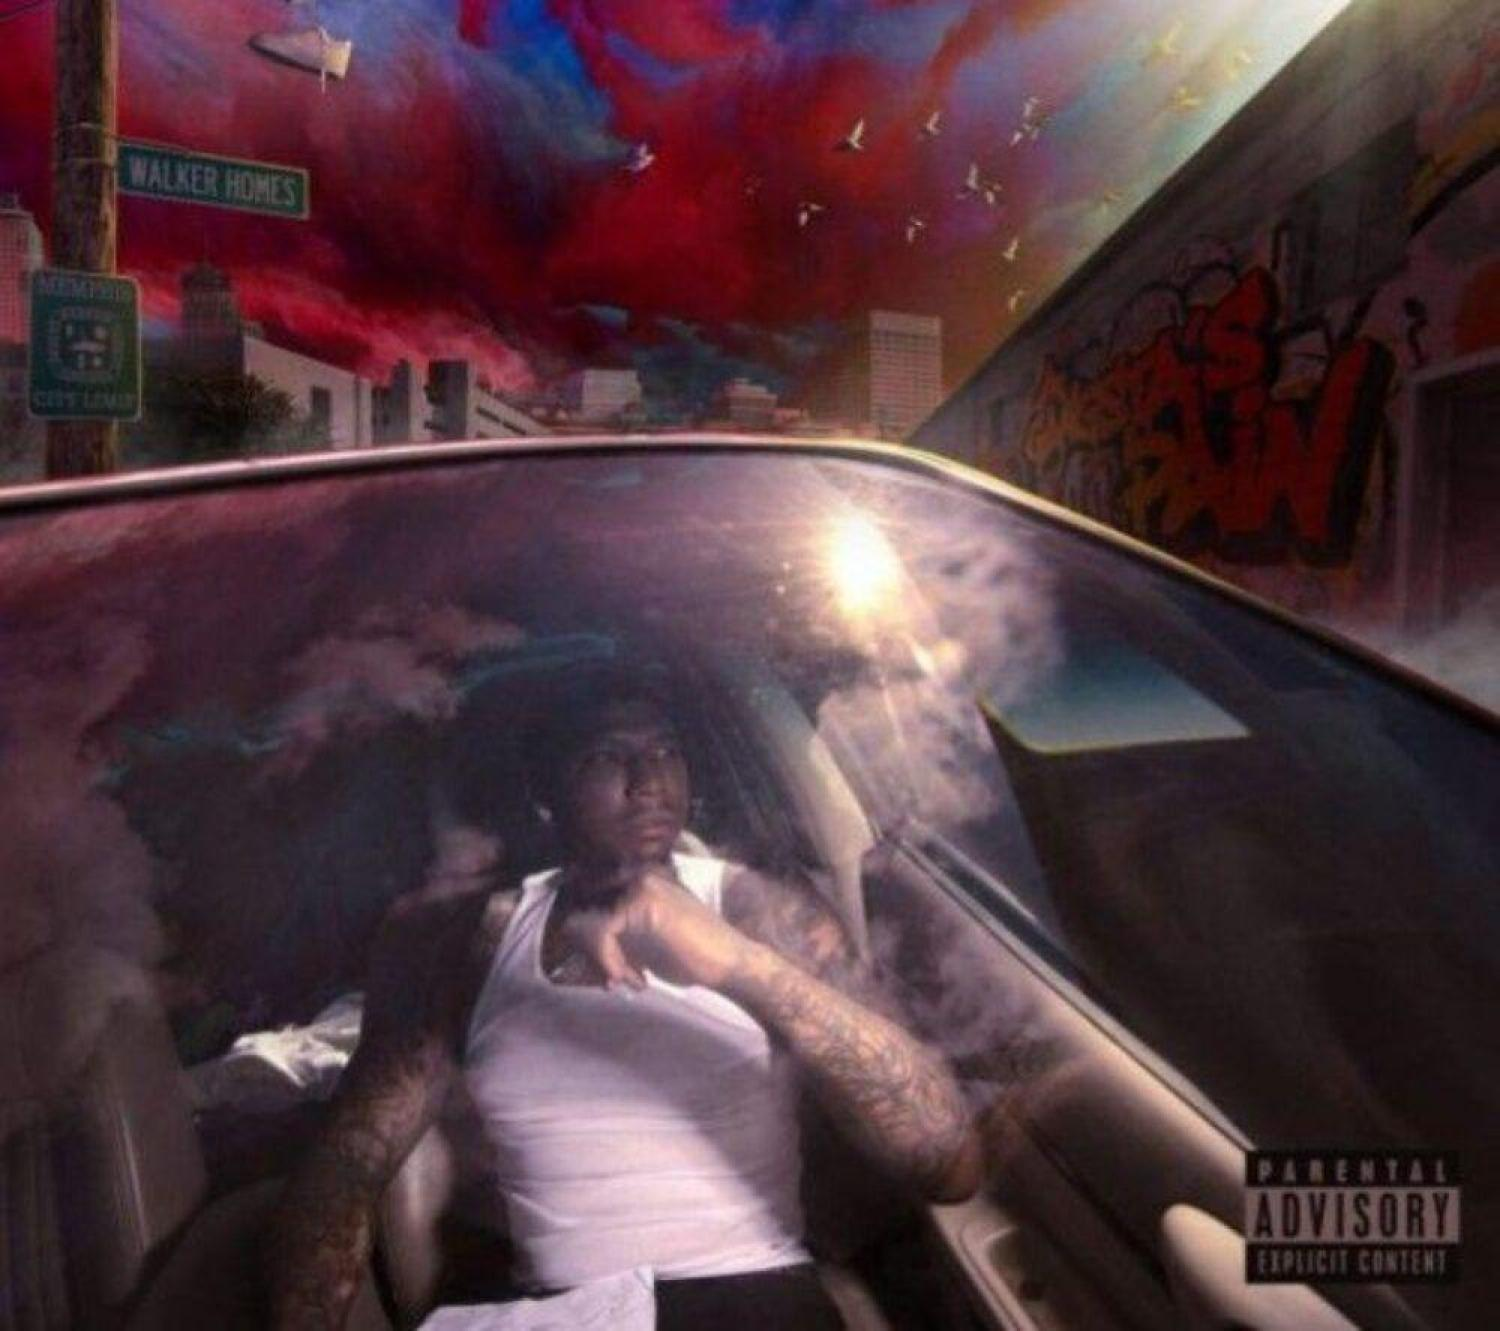 DOWNLOAD MP3: Moneybagg Yo – Time Today AUDIO 320kbps